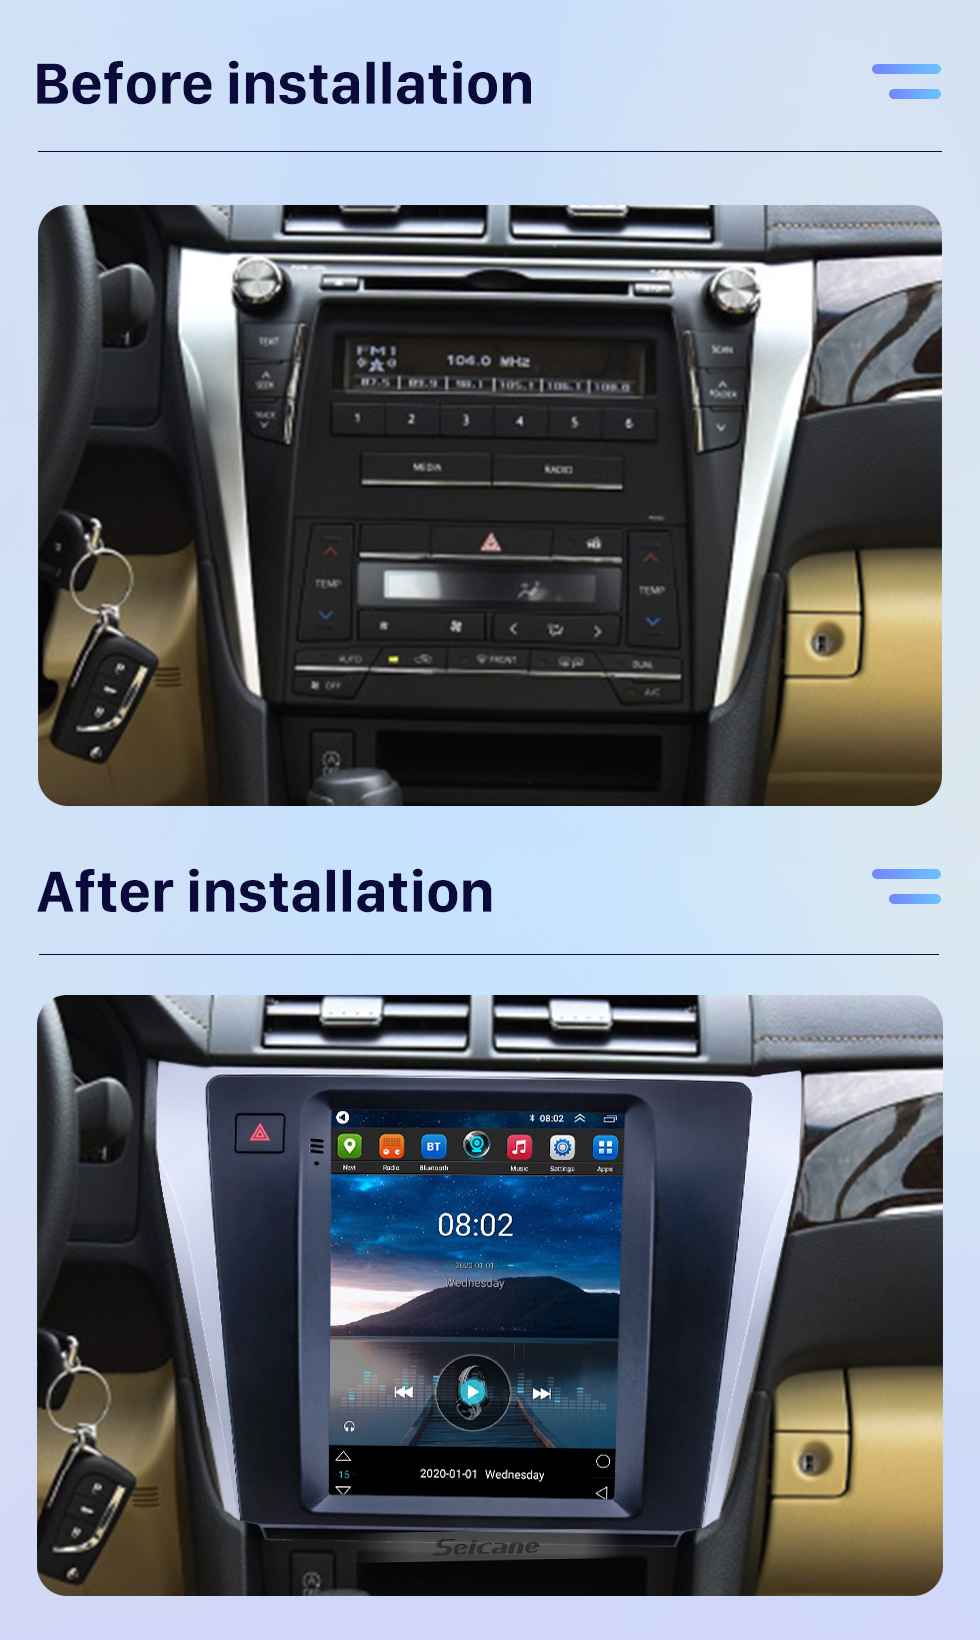 Seicane 9.7 inch Android 10.0 GPS Navigation Radio for 2015-2017 Toyota Camry with HD Touchscreen Bluetooth AUX support Carplay OBD2